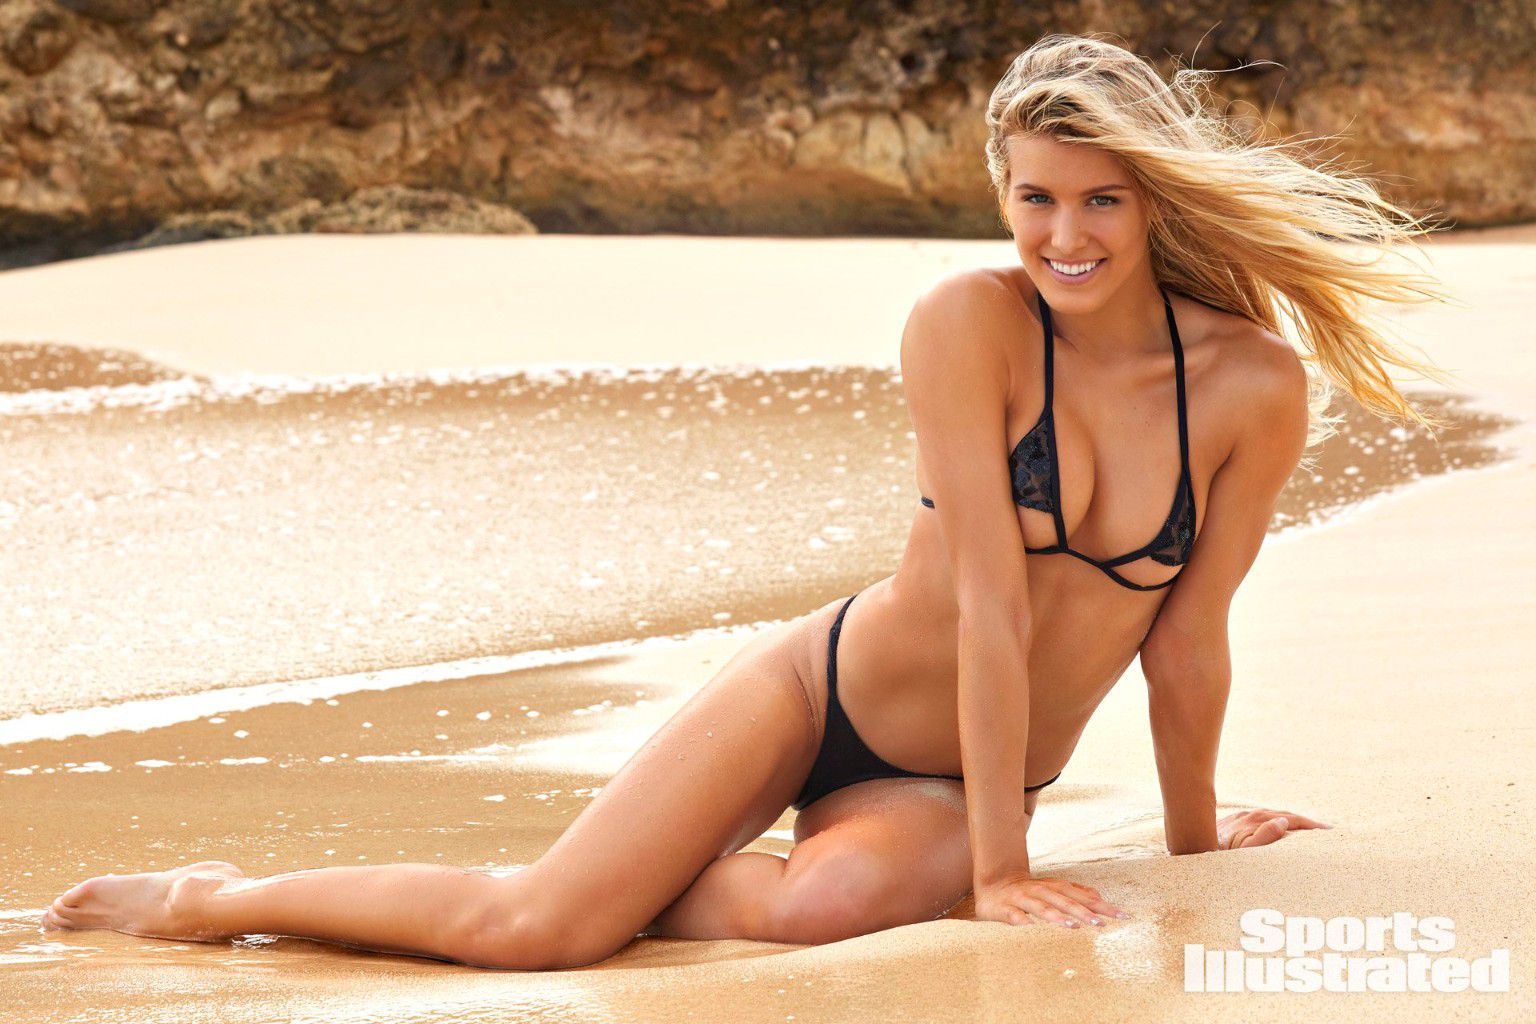 eugenie-bouchard-super-sexy-in-sports-illustrated-swimsuit-issue-2018-24